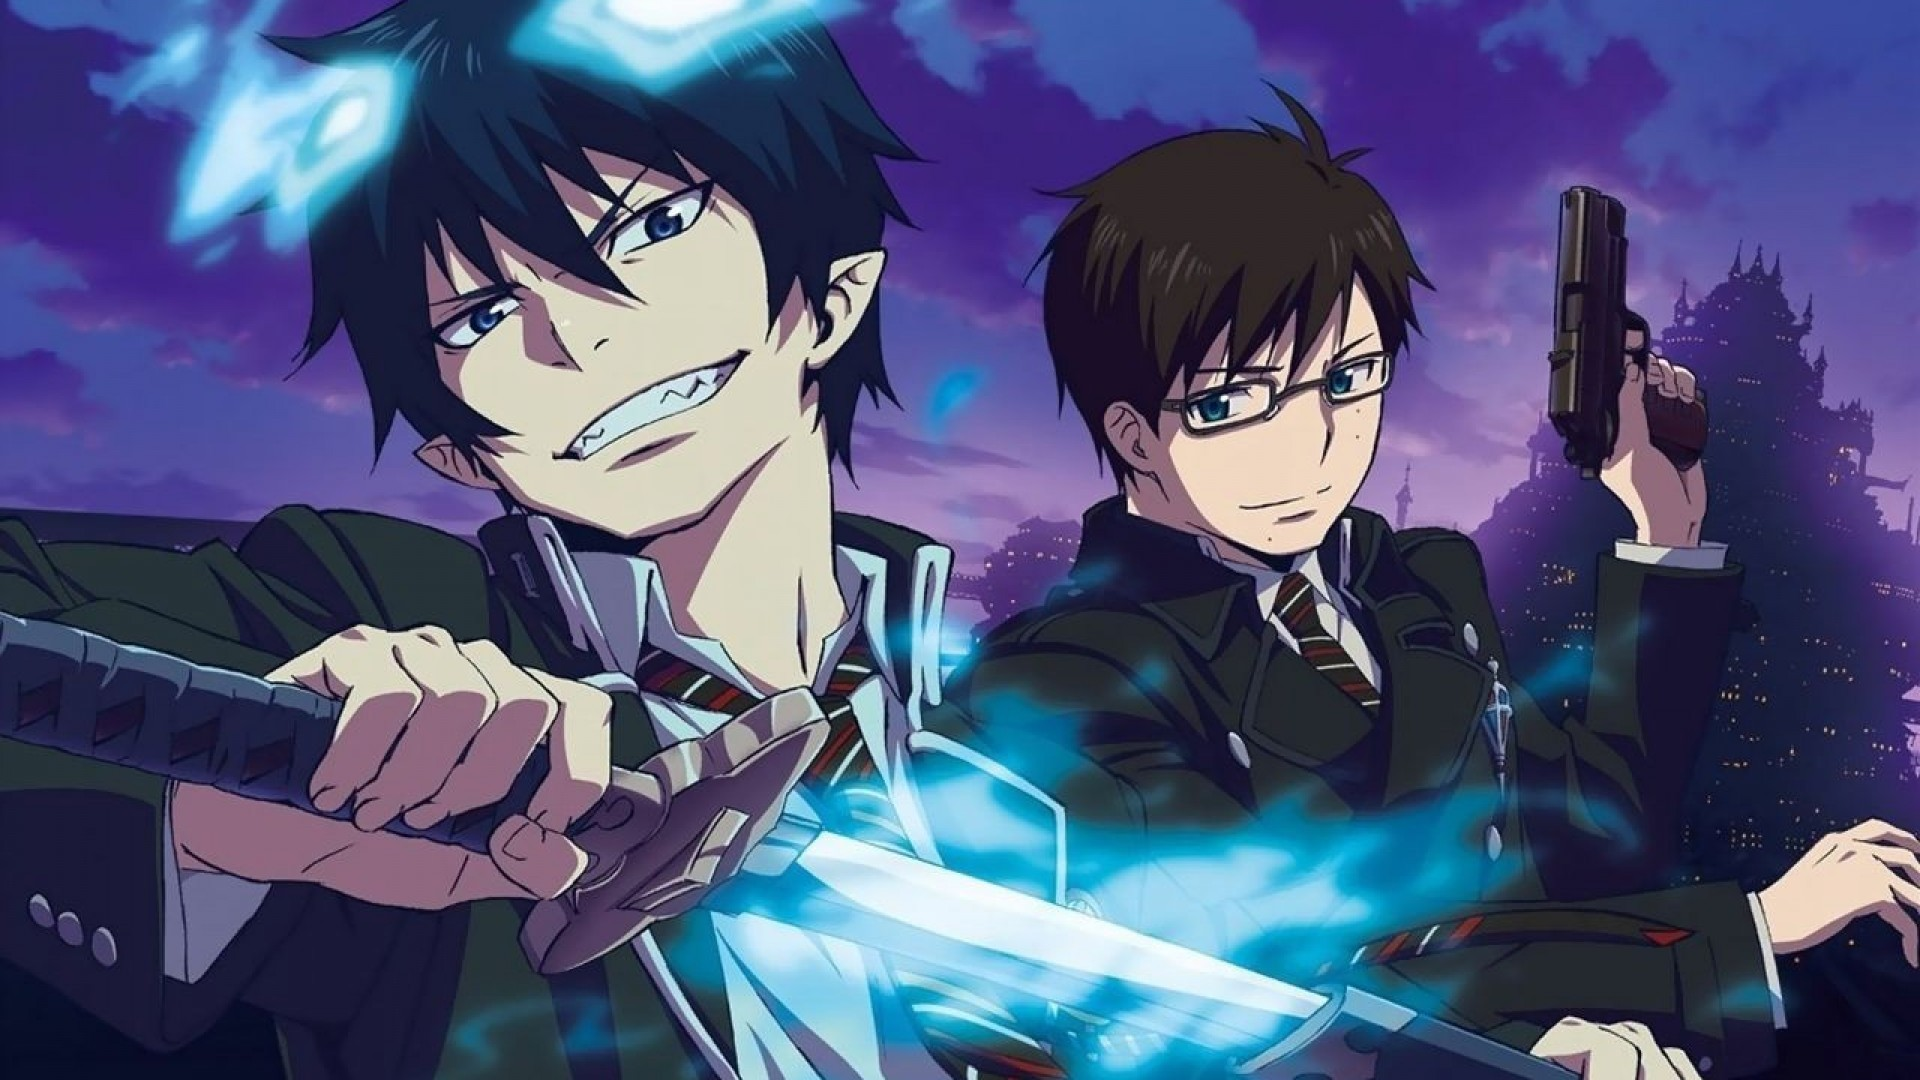 Blue exorcist wallpaper download free amazing - Blue exorcist wallpaper ...